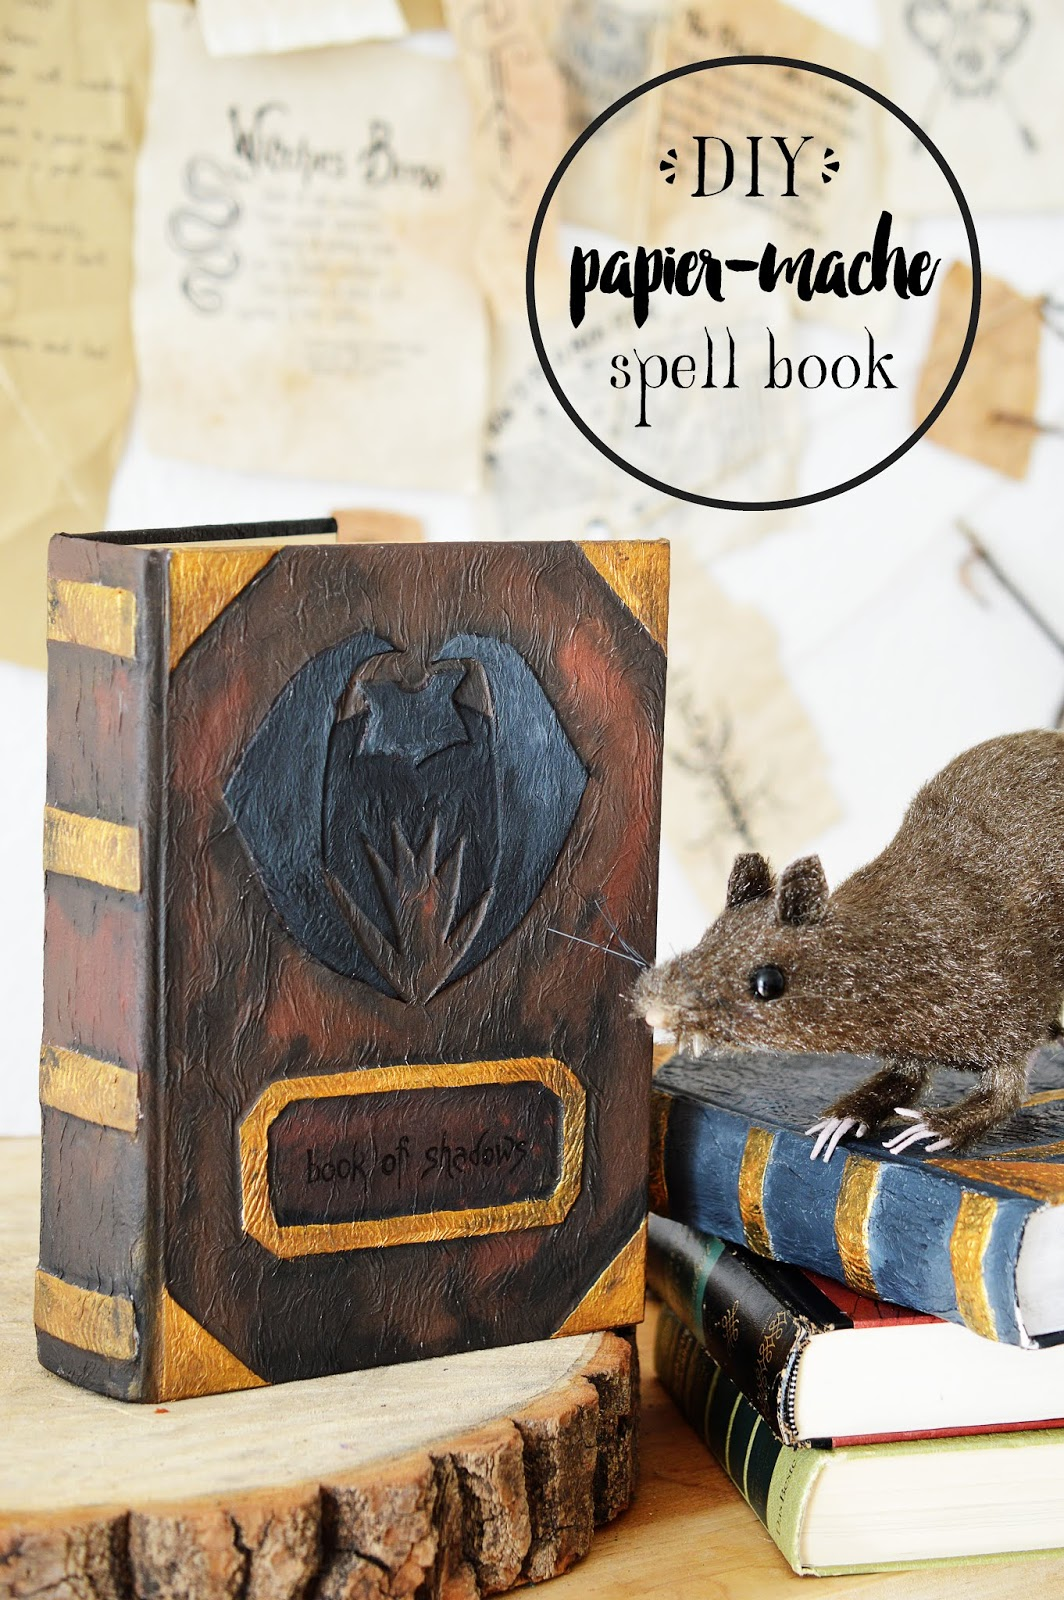 DIY Papier-Maché Spell Book, Motte's Blog